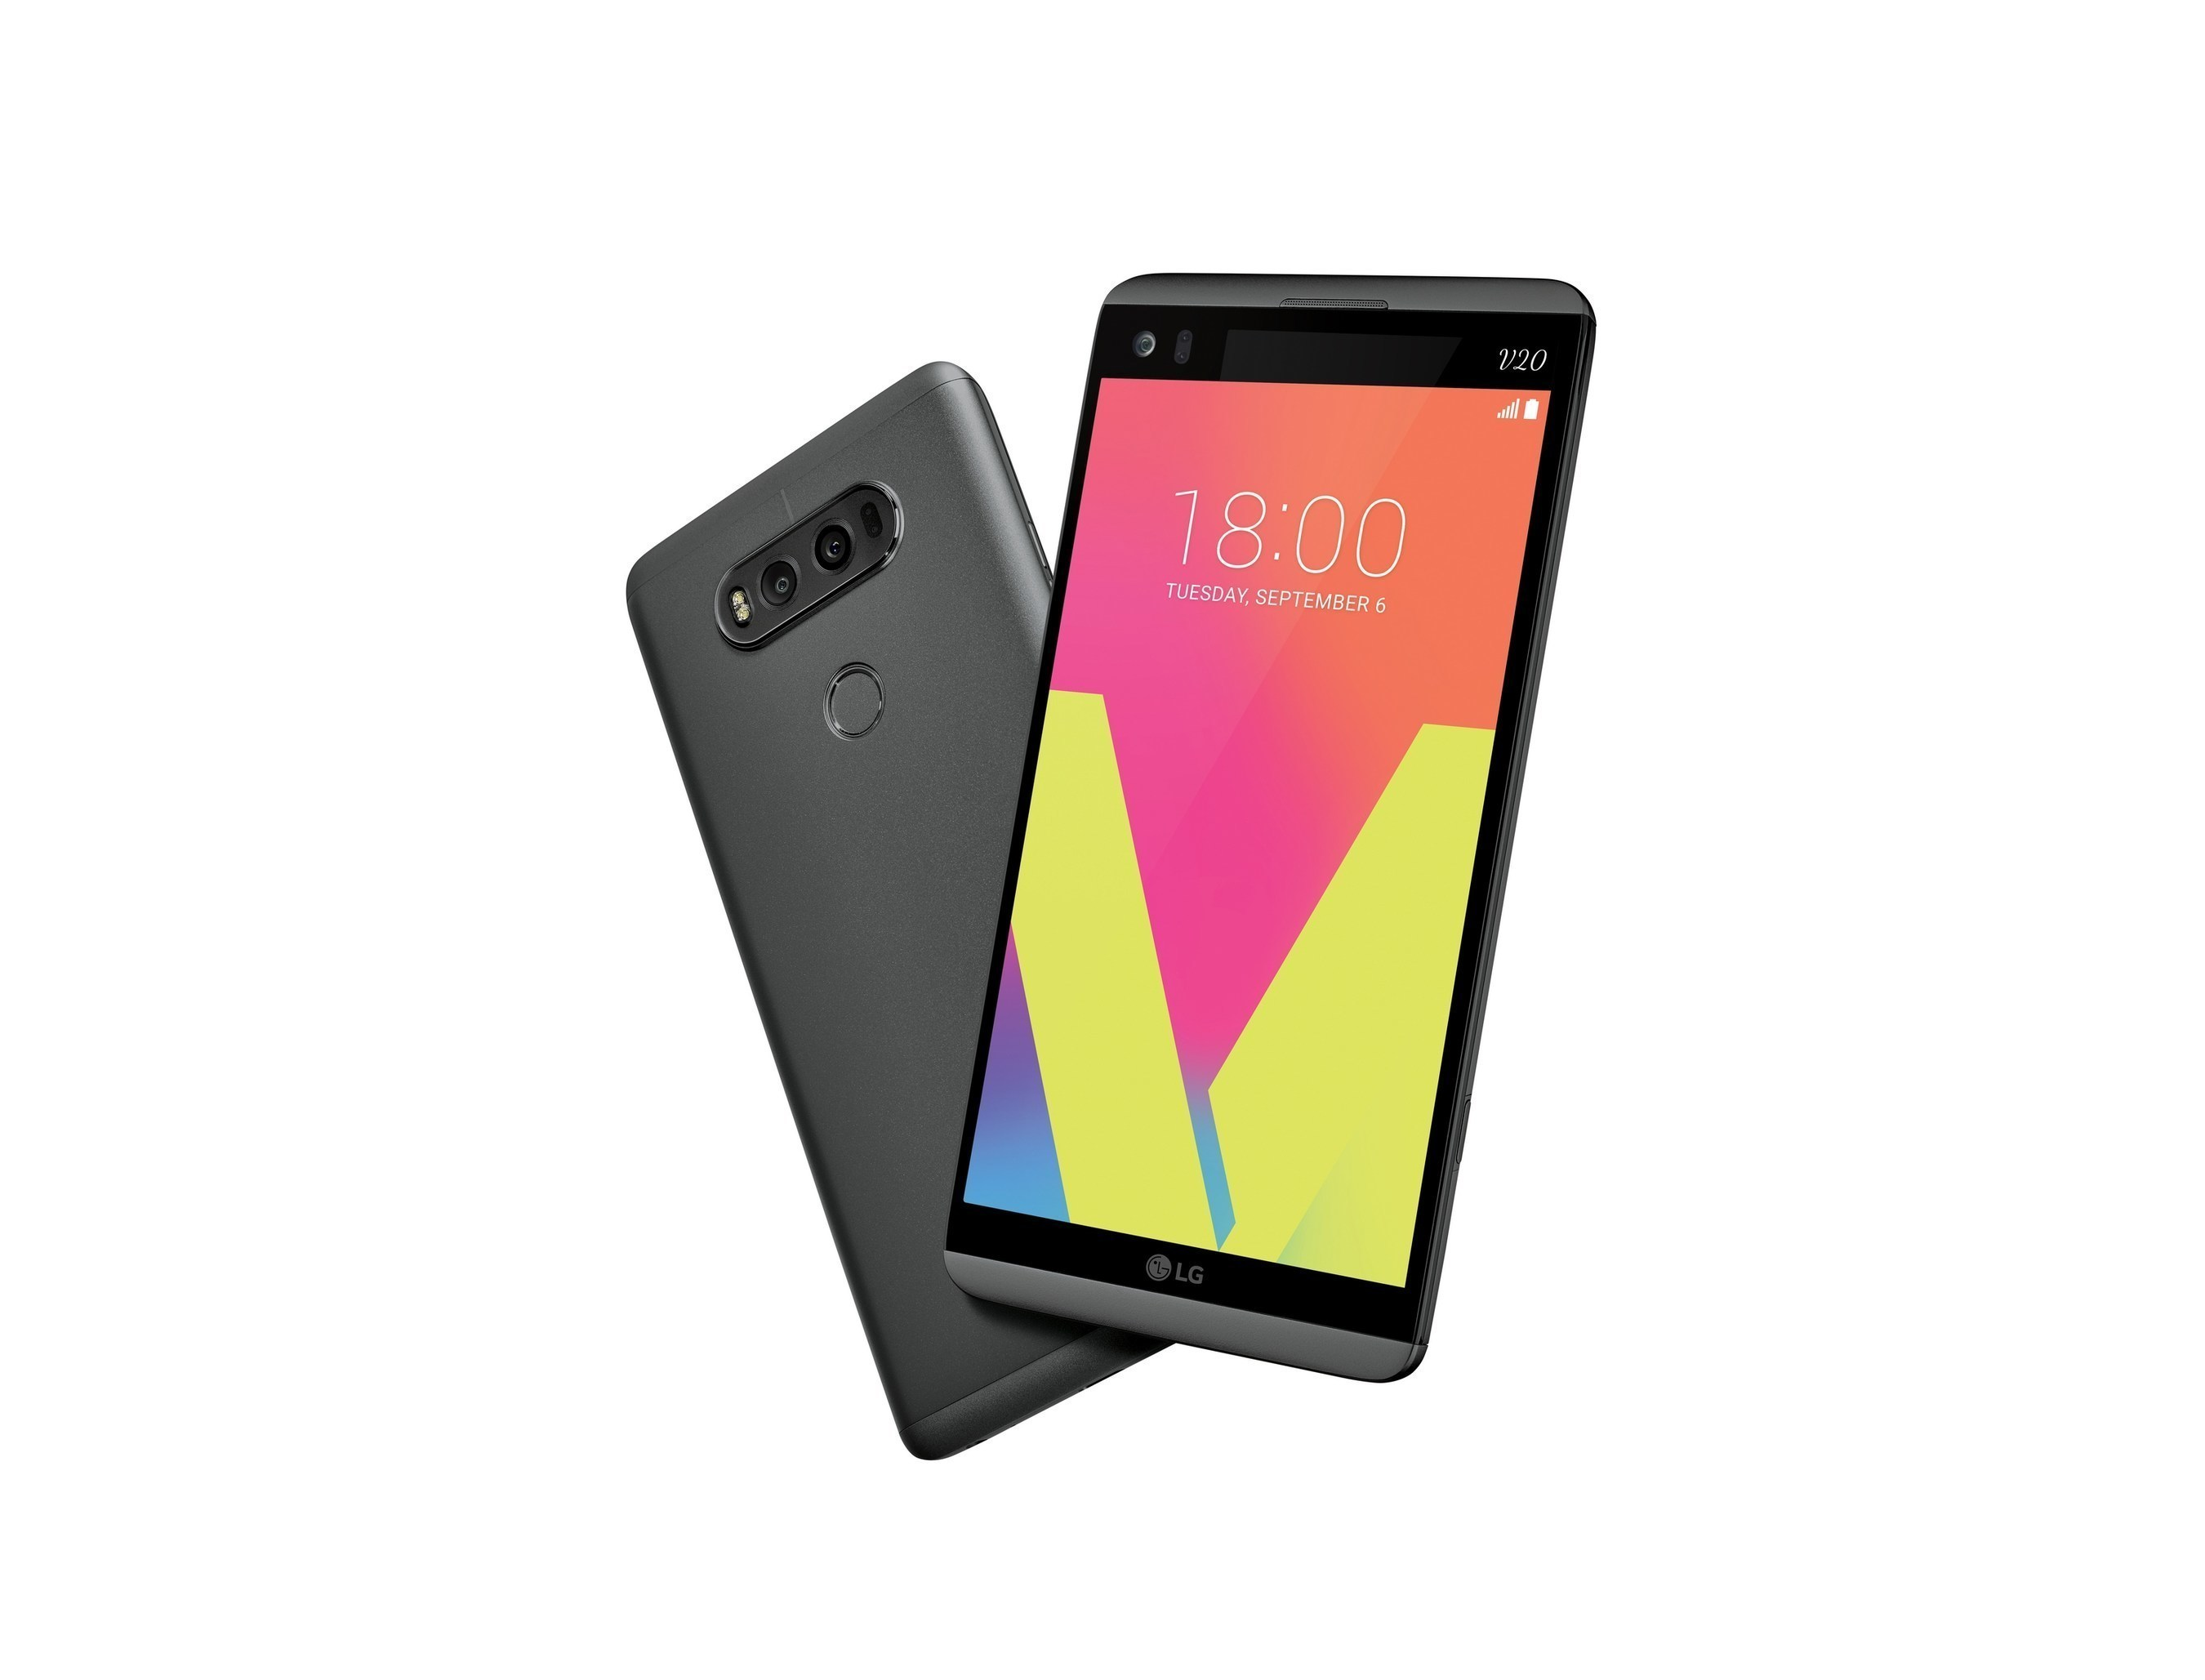 LG Takes Enterprise Productivity To The Next Level With LG V20 Smartphone